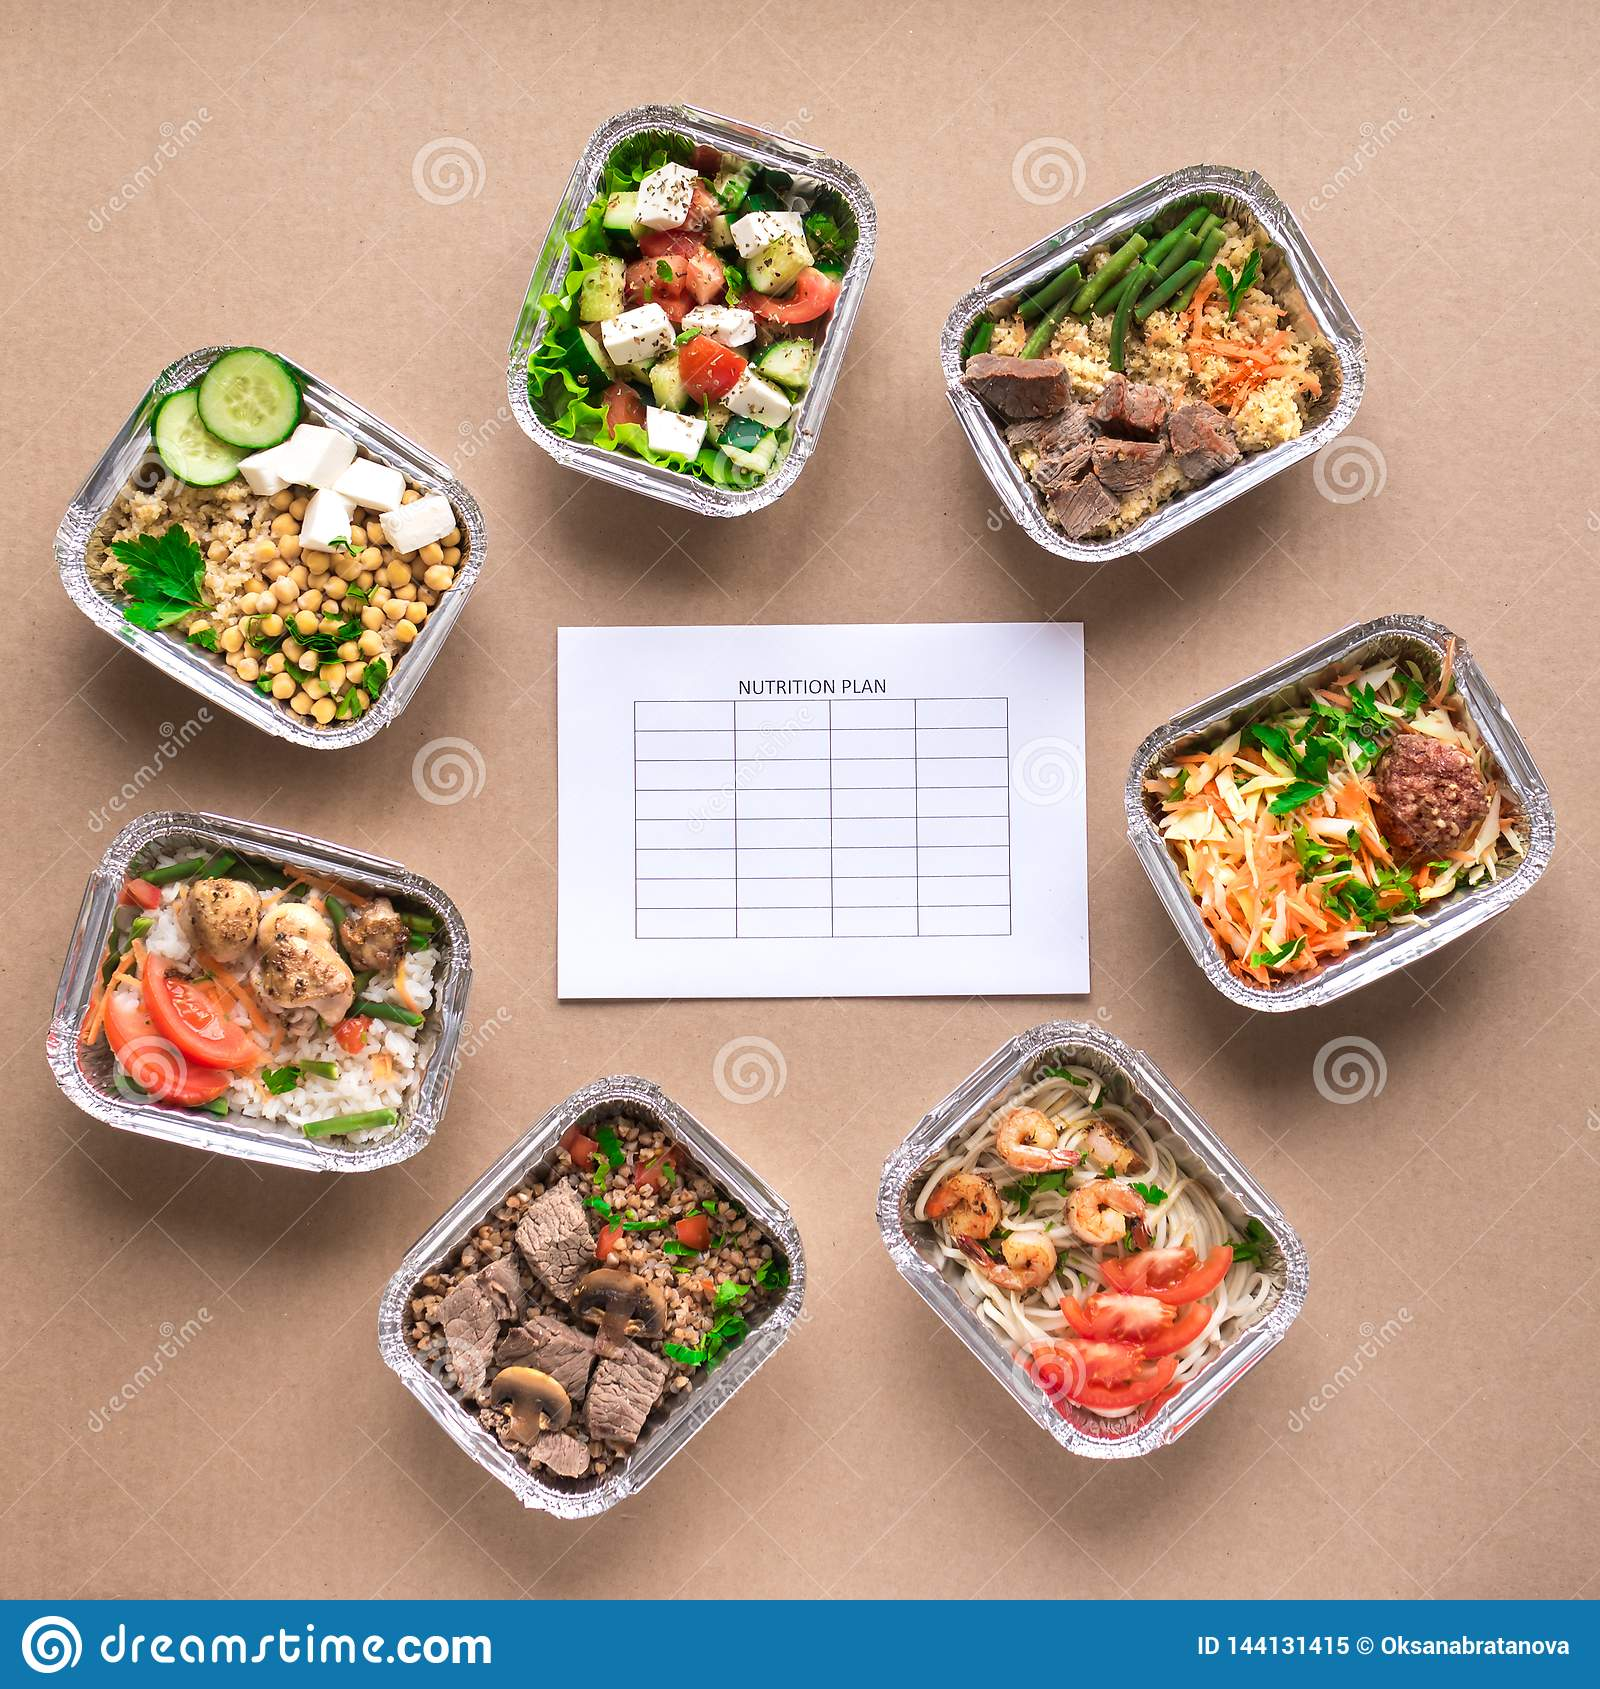 diet plan meal delivery